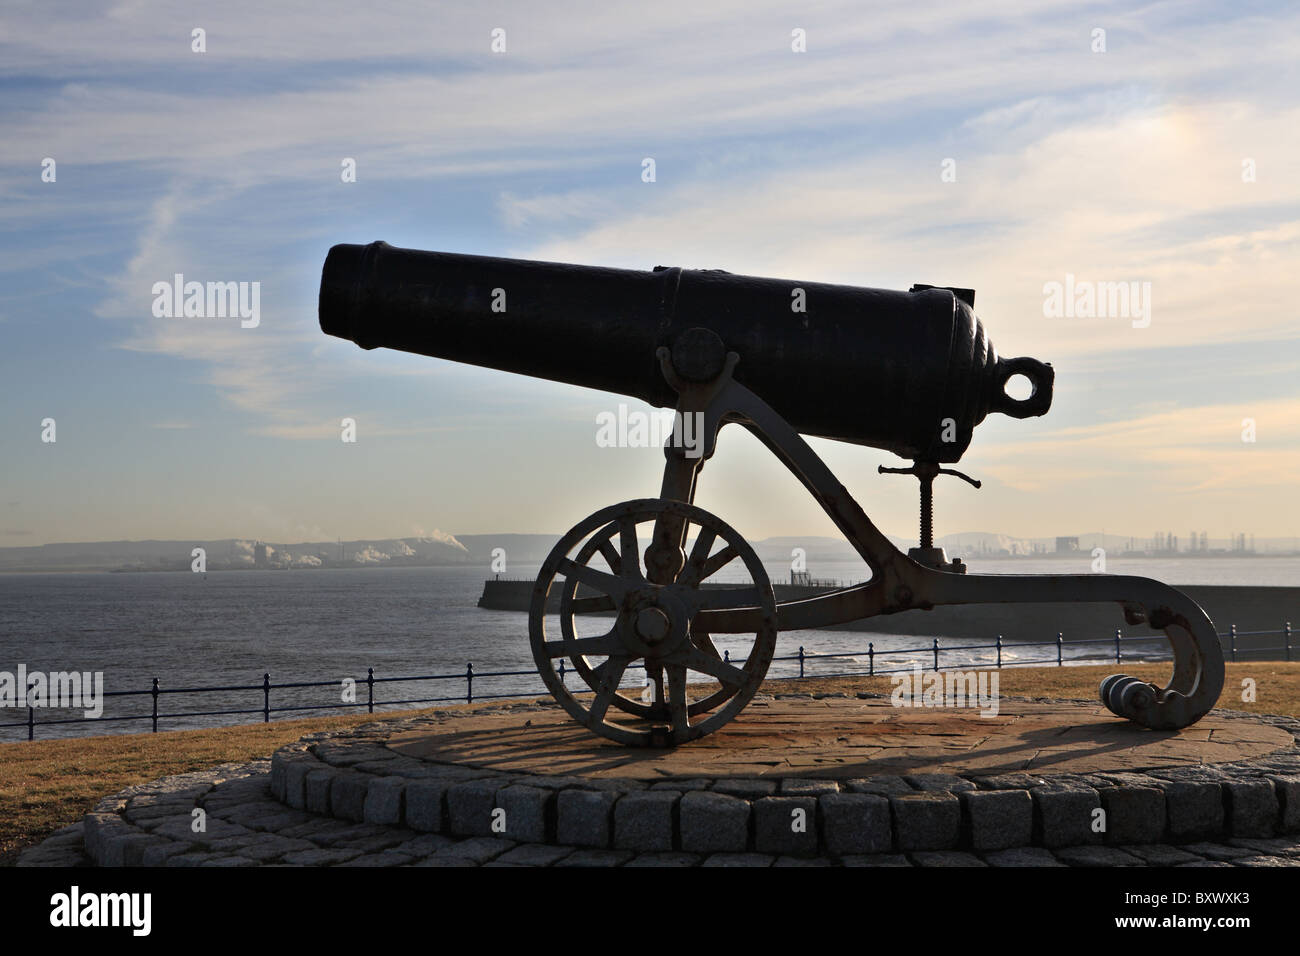 Sebastopol Cannon captured during the Crimean war, situated at Hartlepool Headland, North East England. - Stock Image